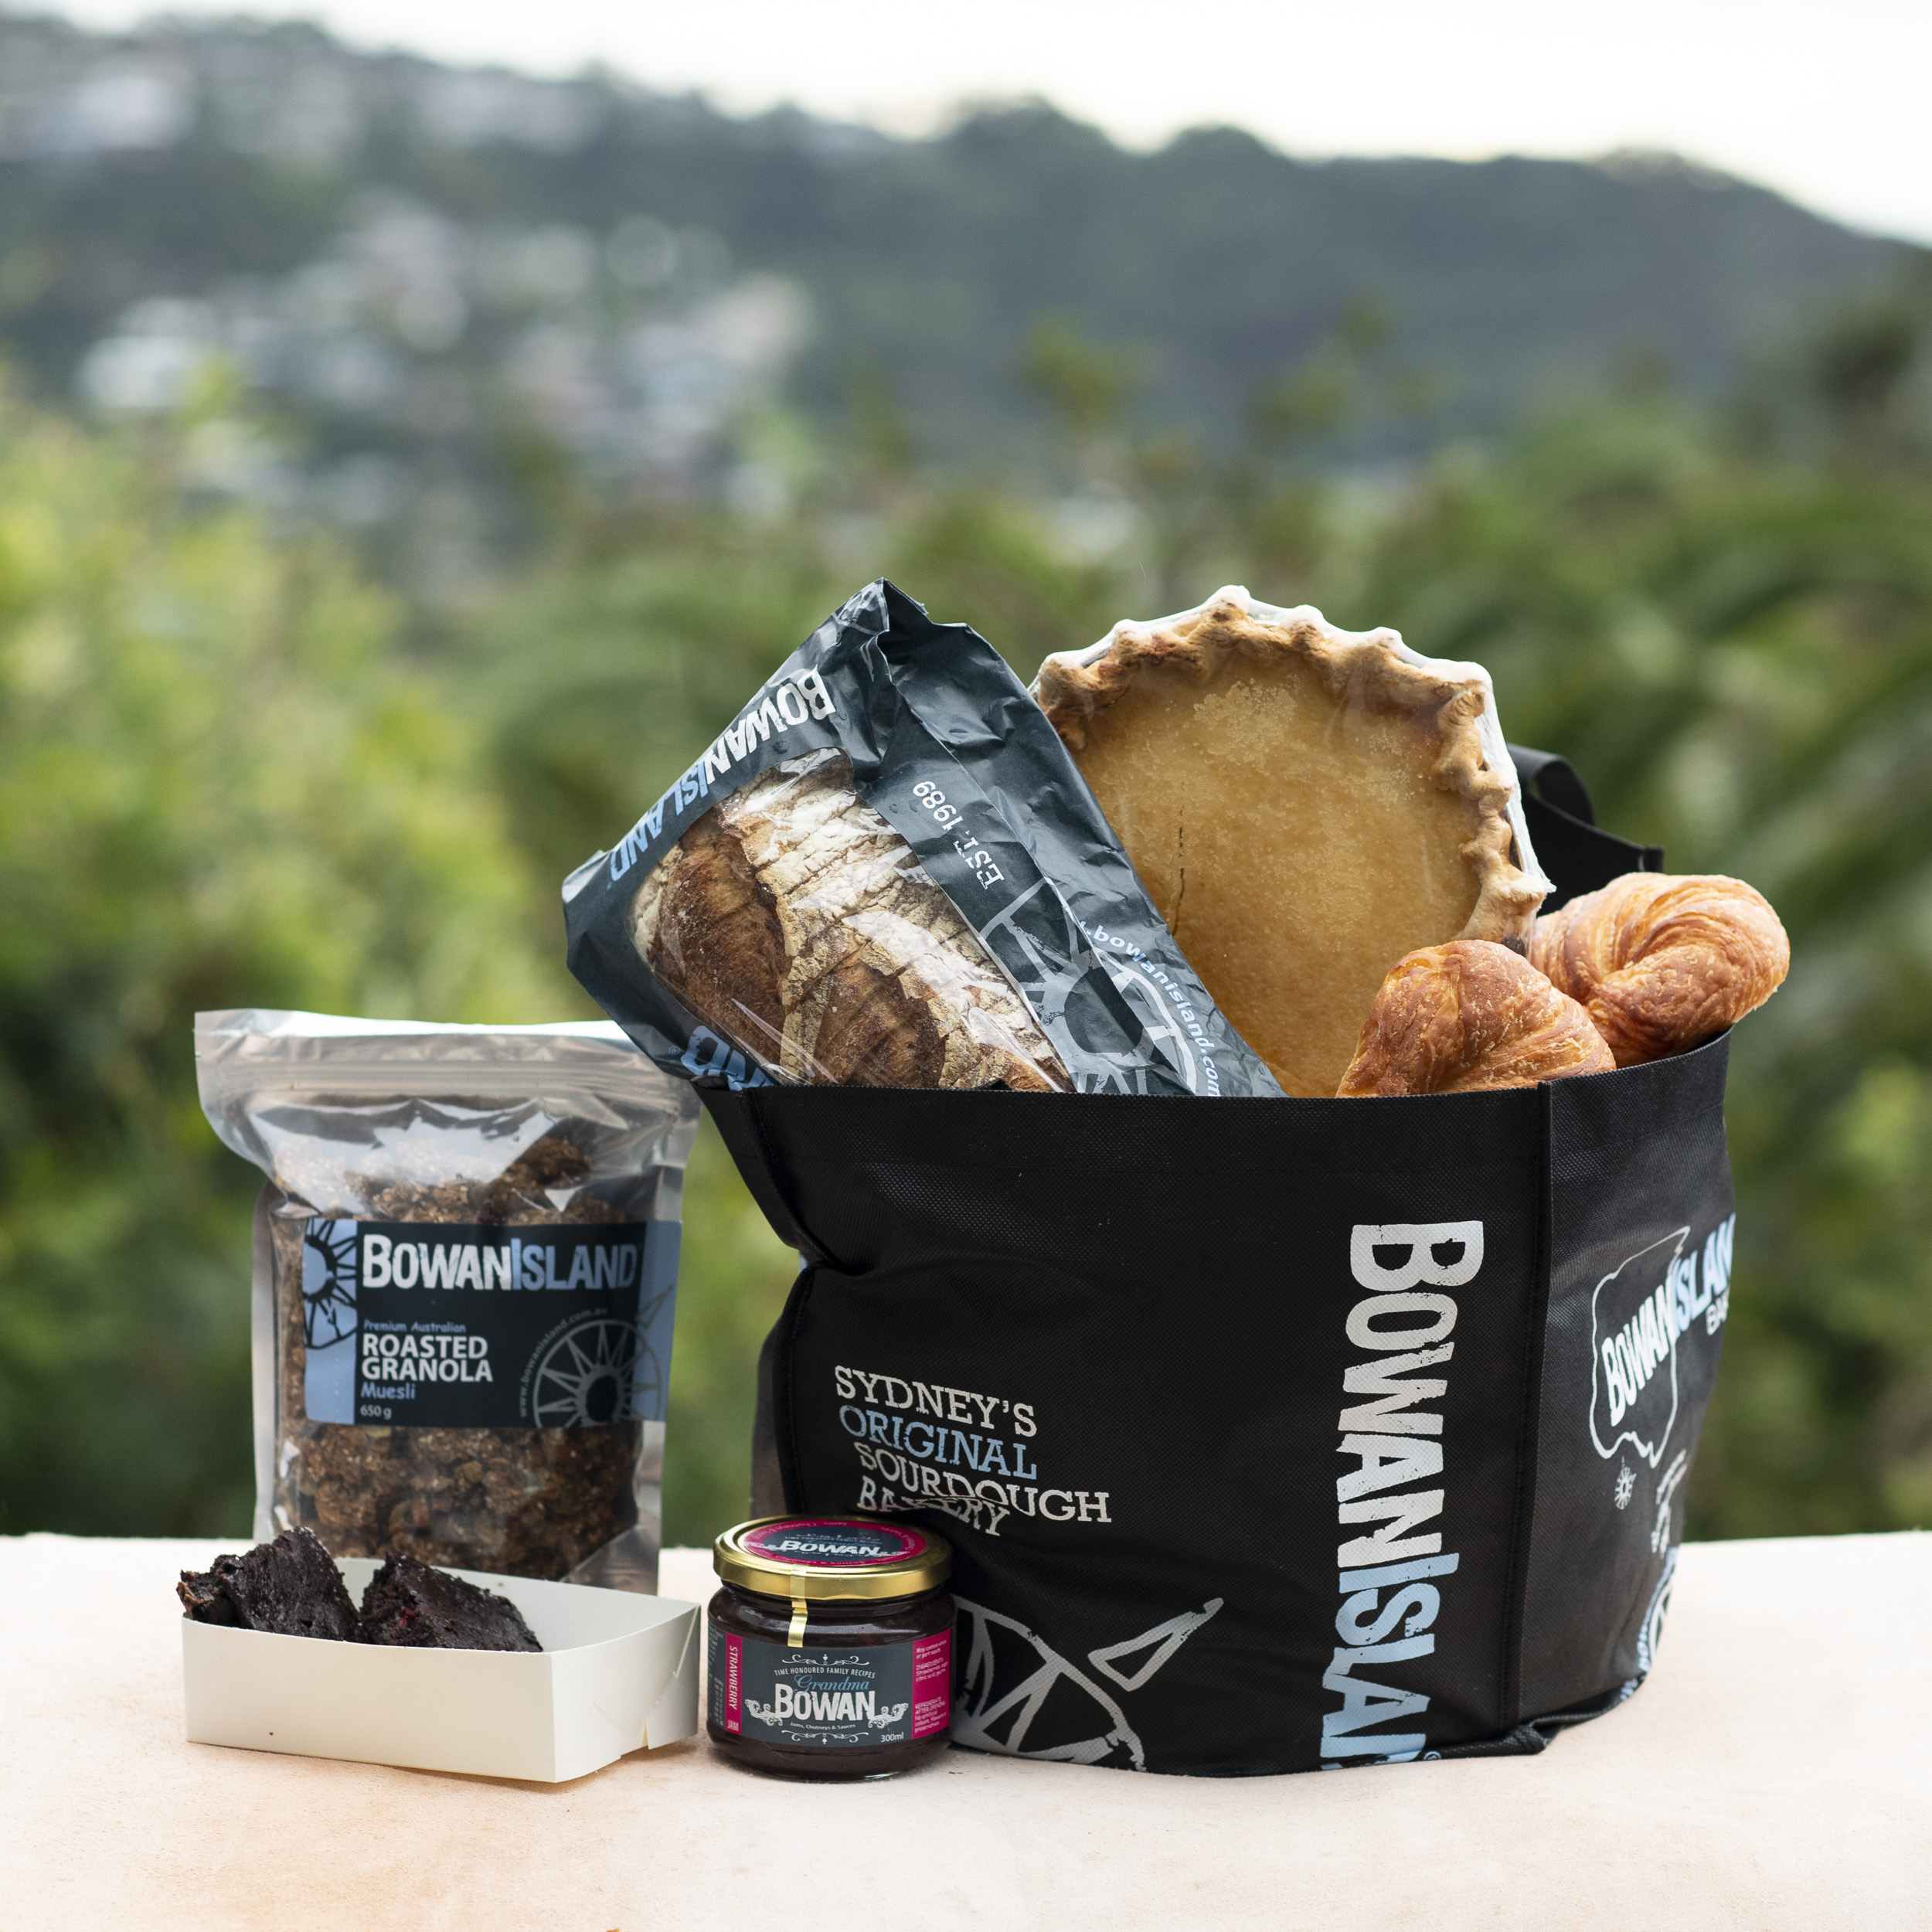 Bowan Island Mother's Day Hamper